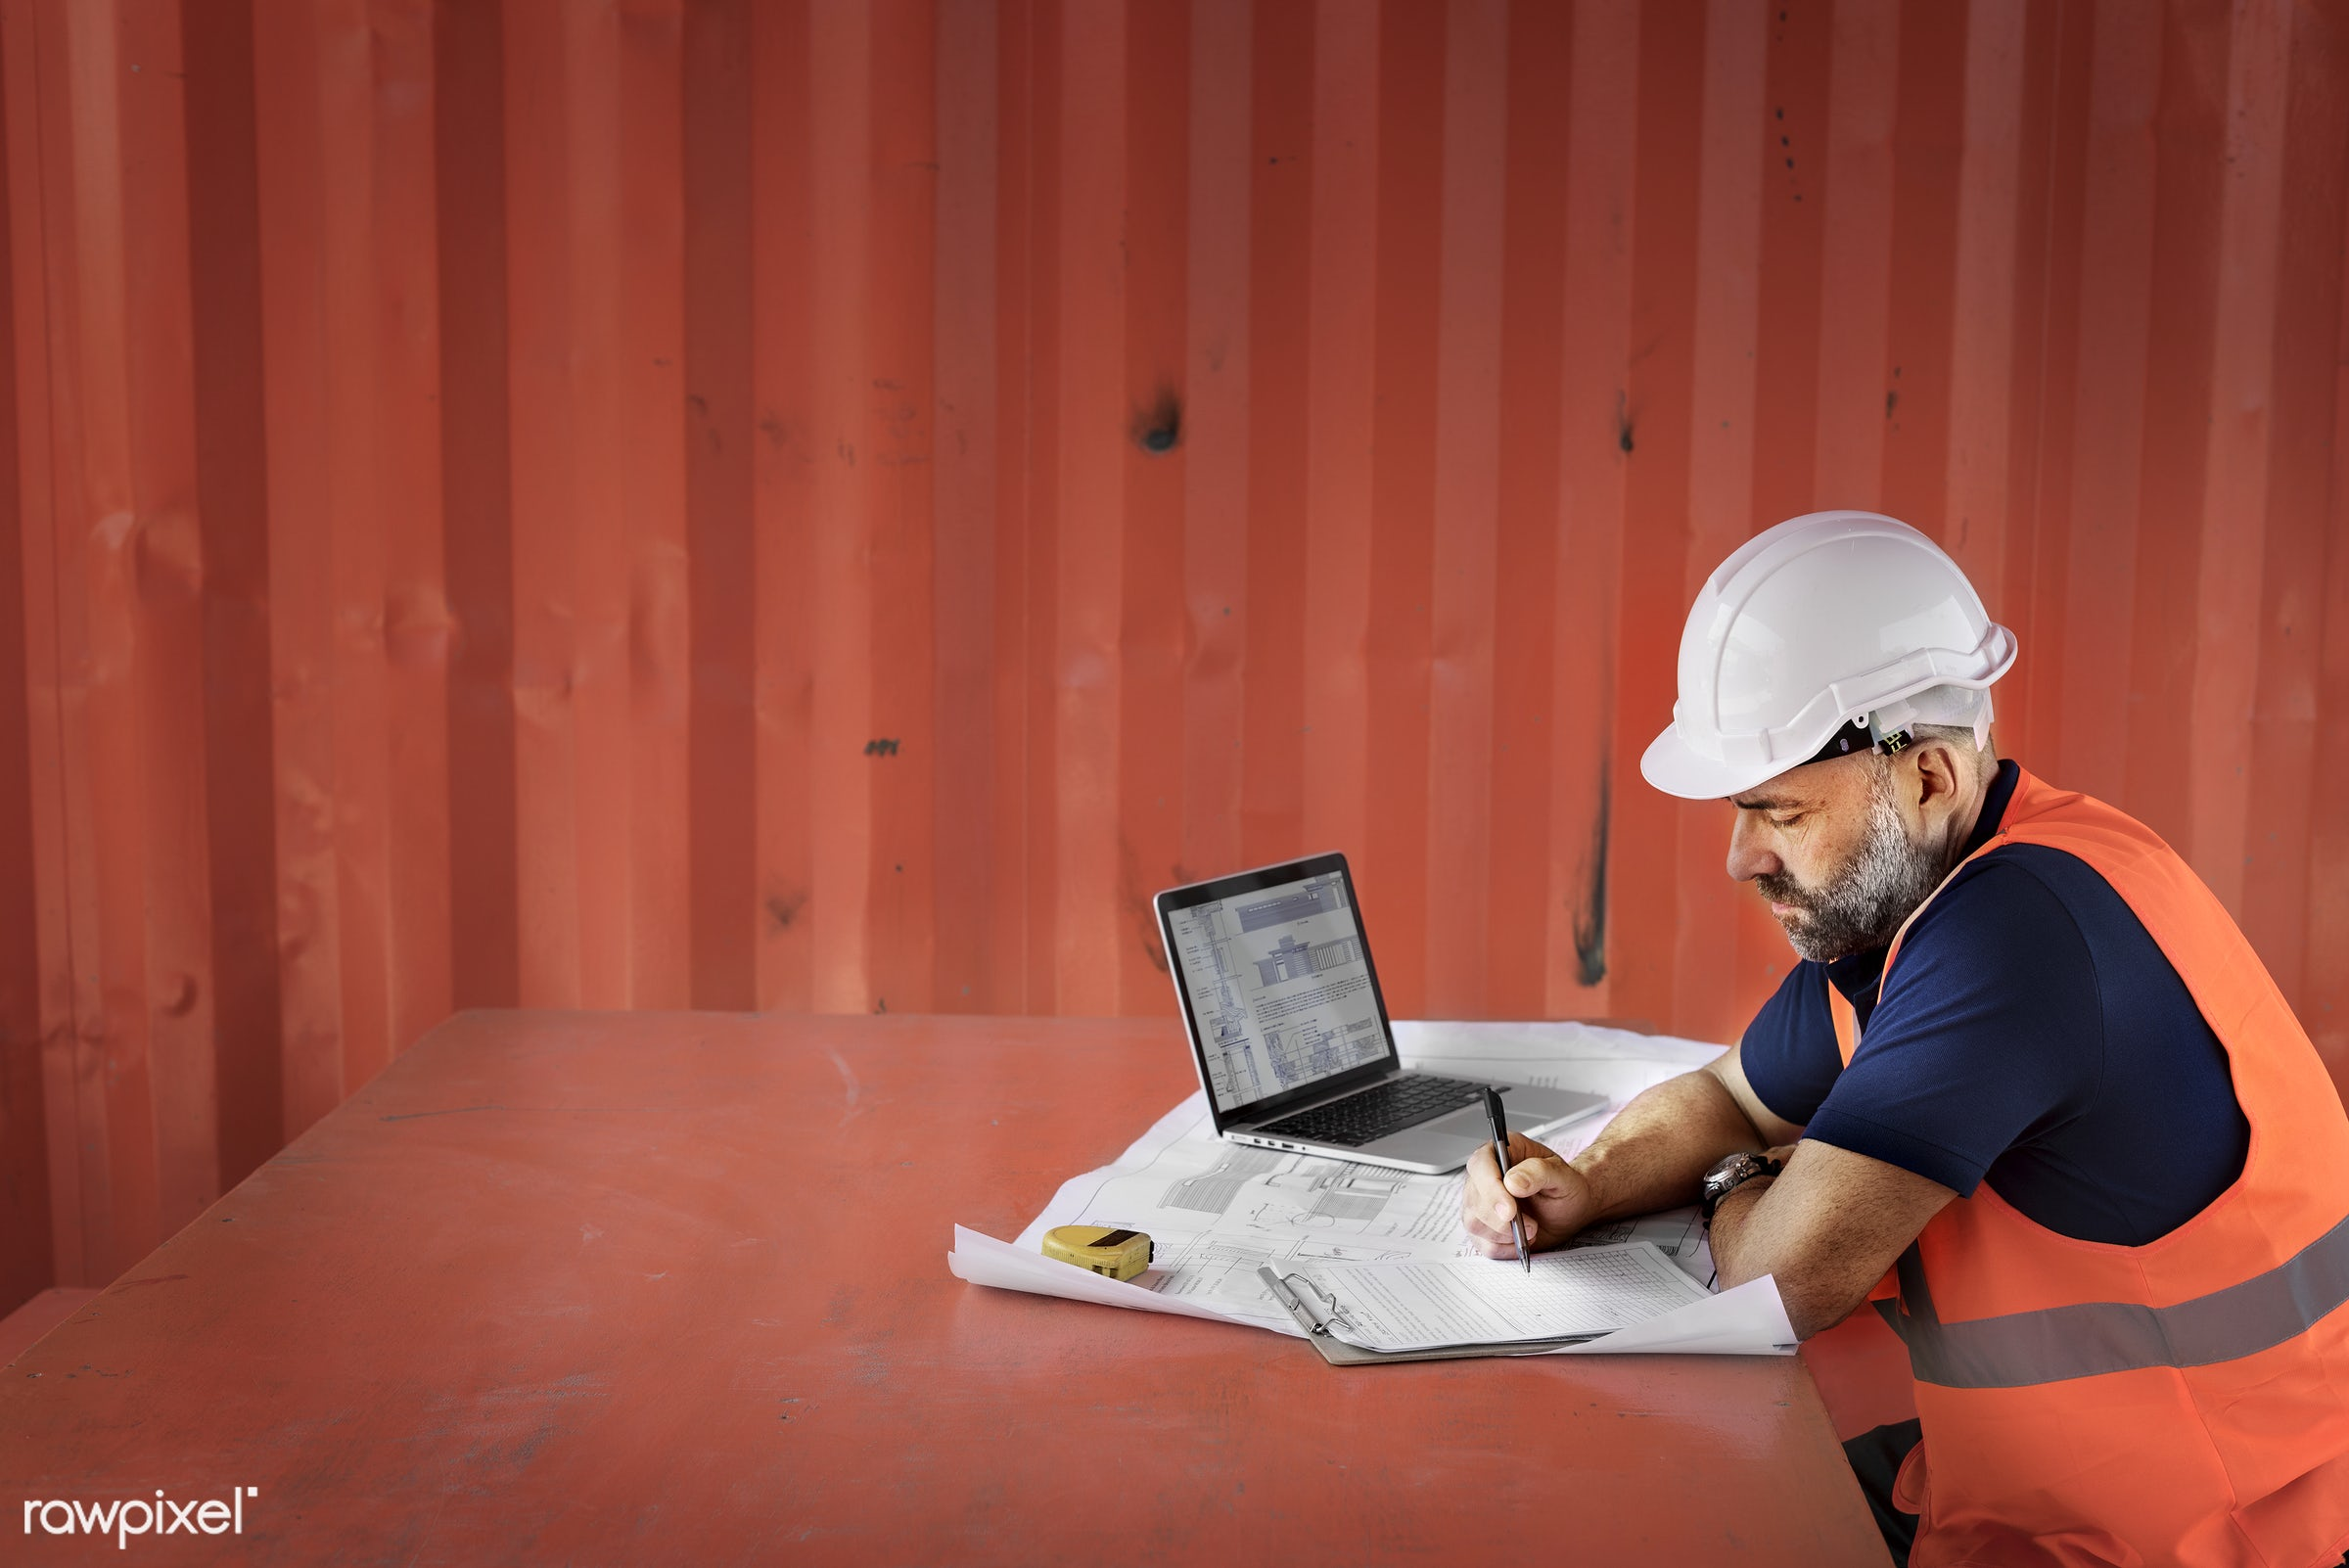 person, architecture, helmet, foreman, working, alone, man, occupation, guy, engineer, candid, professional, architect,...